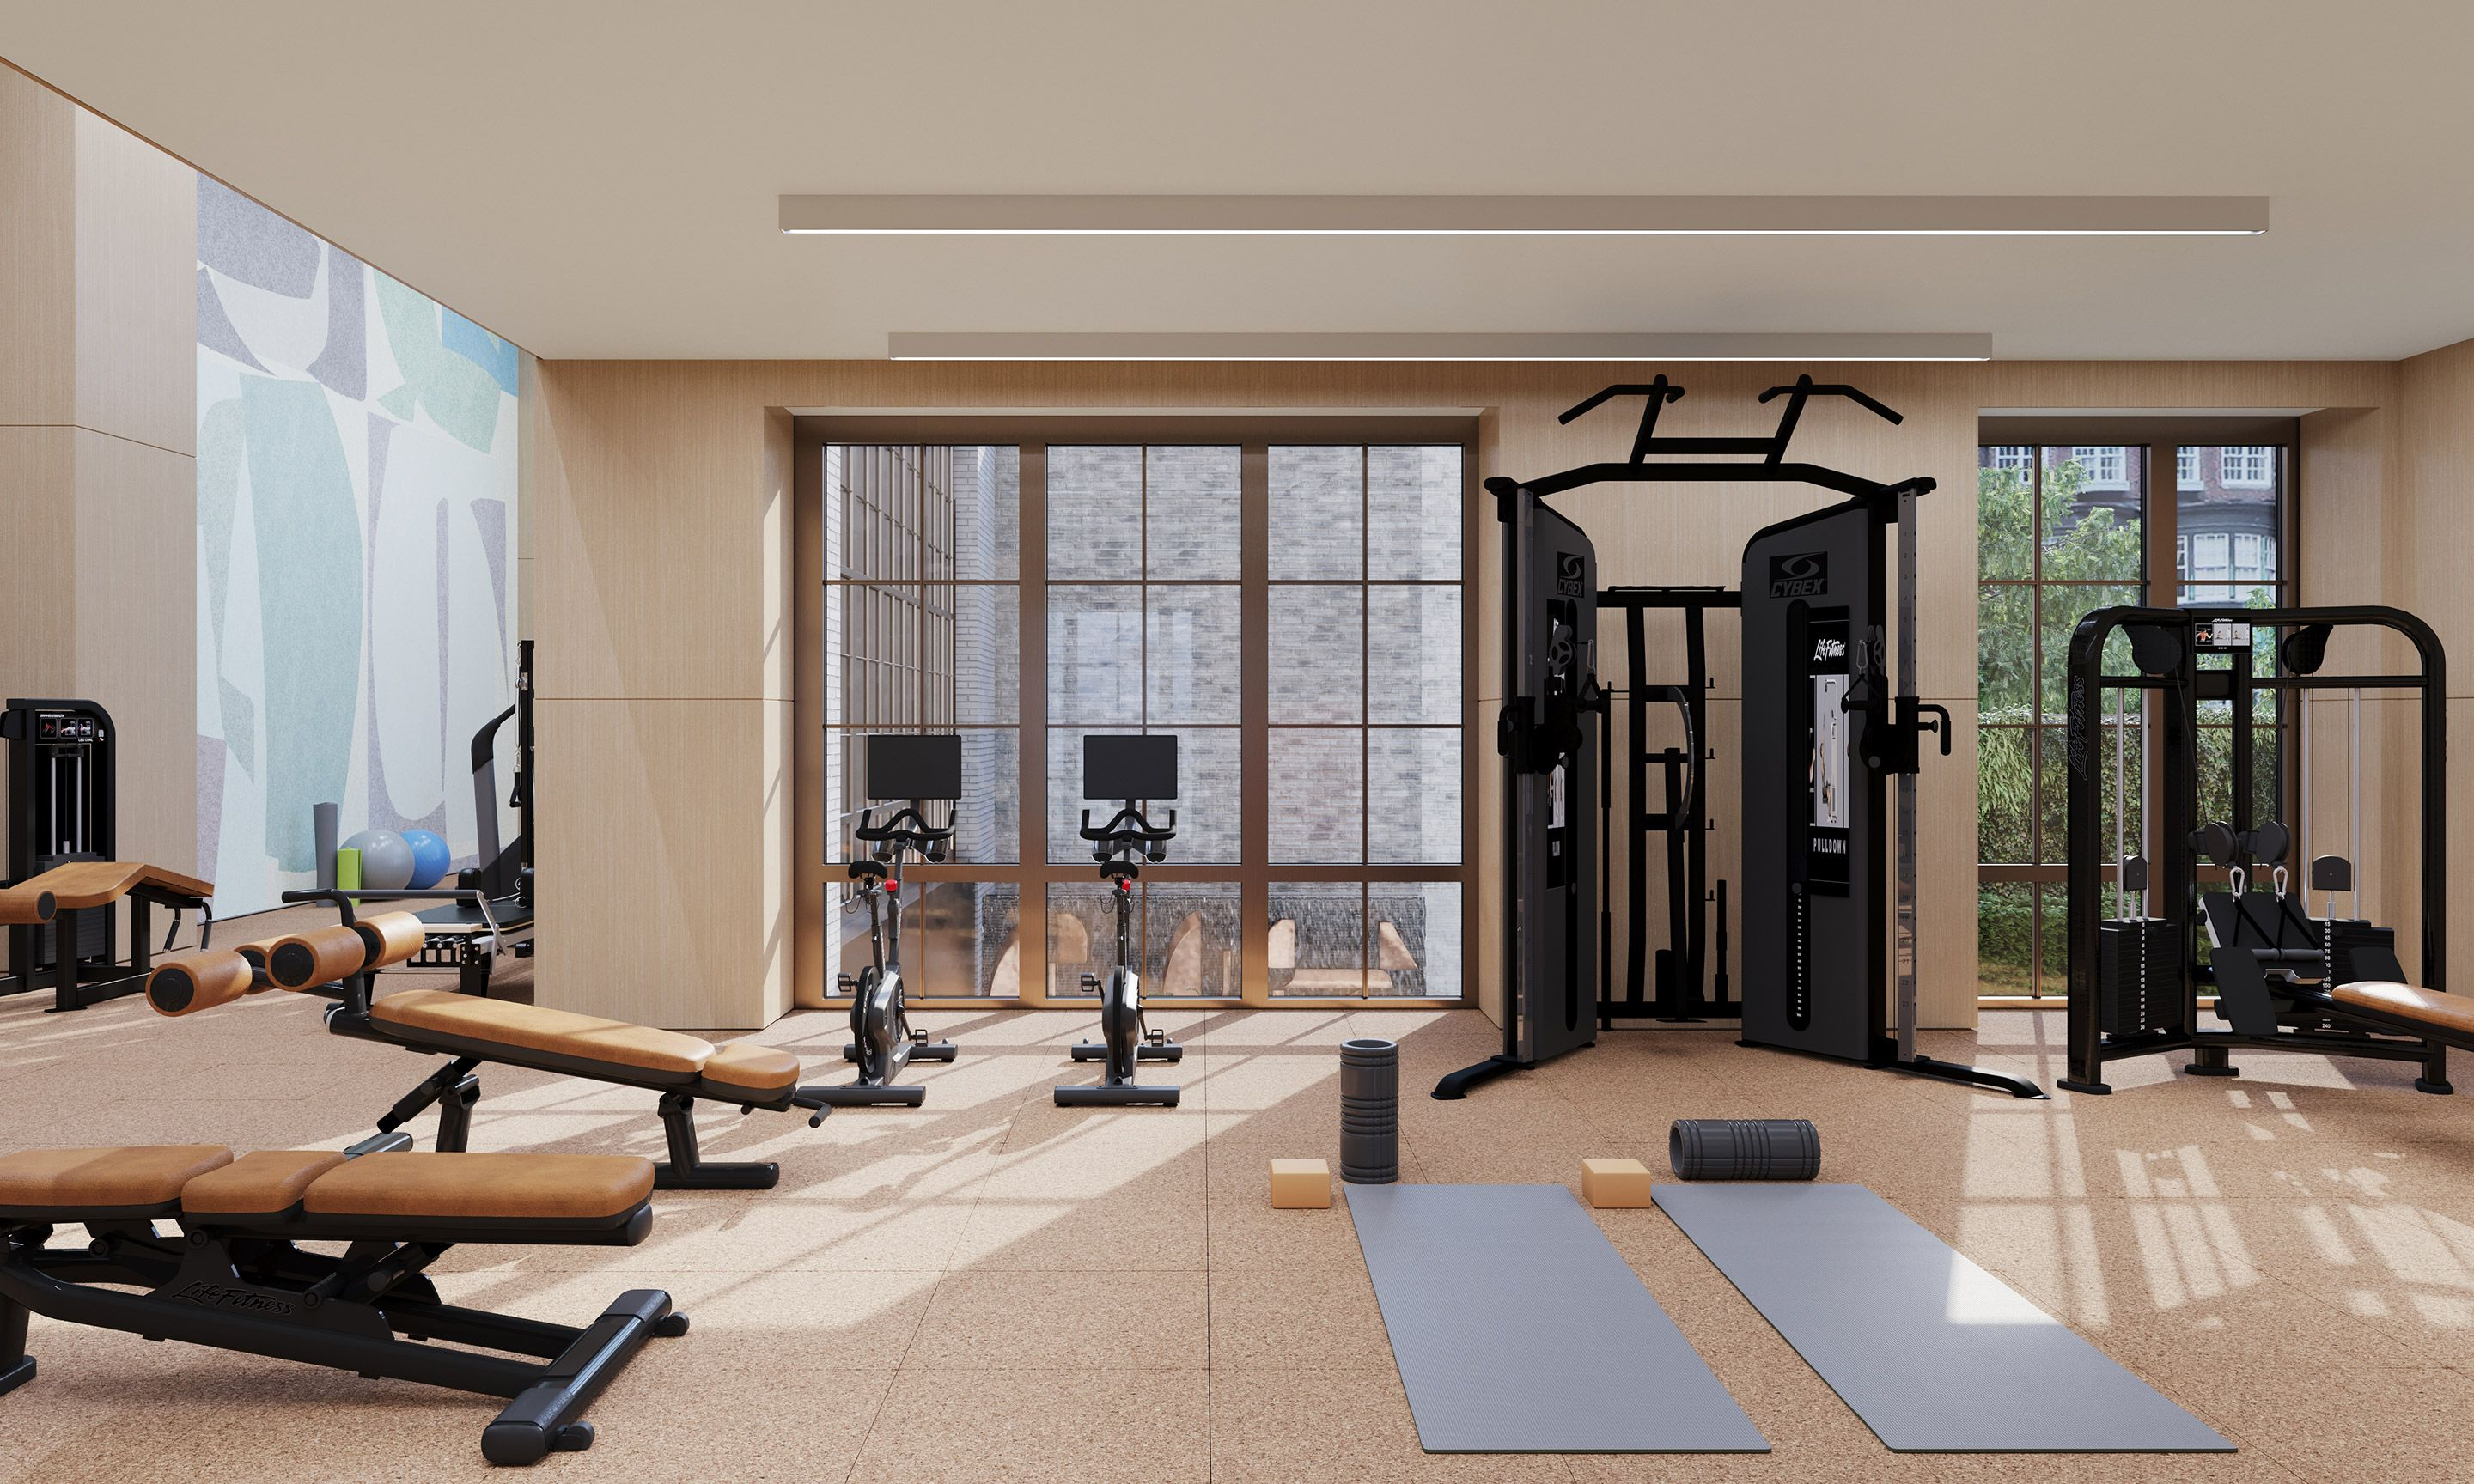 Double-height Fitness Center designed by The Wright Fit, with wall mural by Mig Perkins, overlooks the Garden and its sculptural water wall